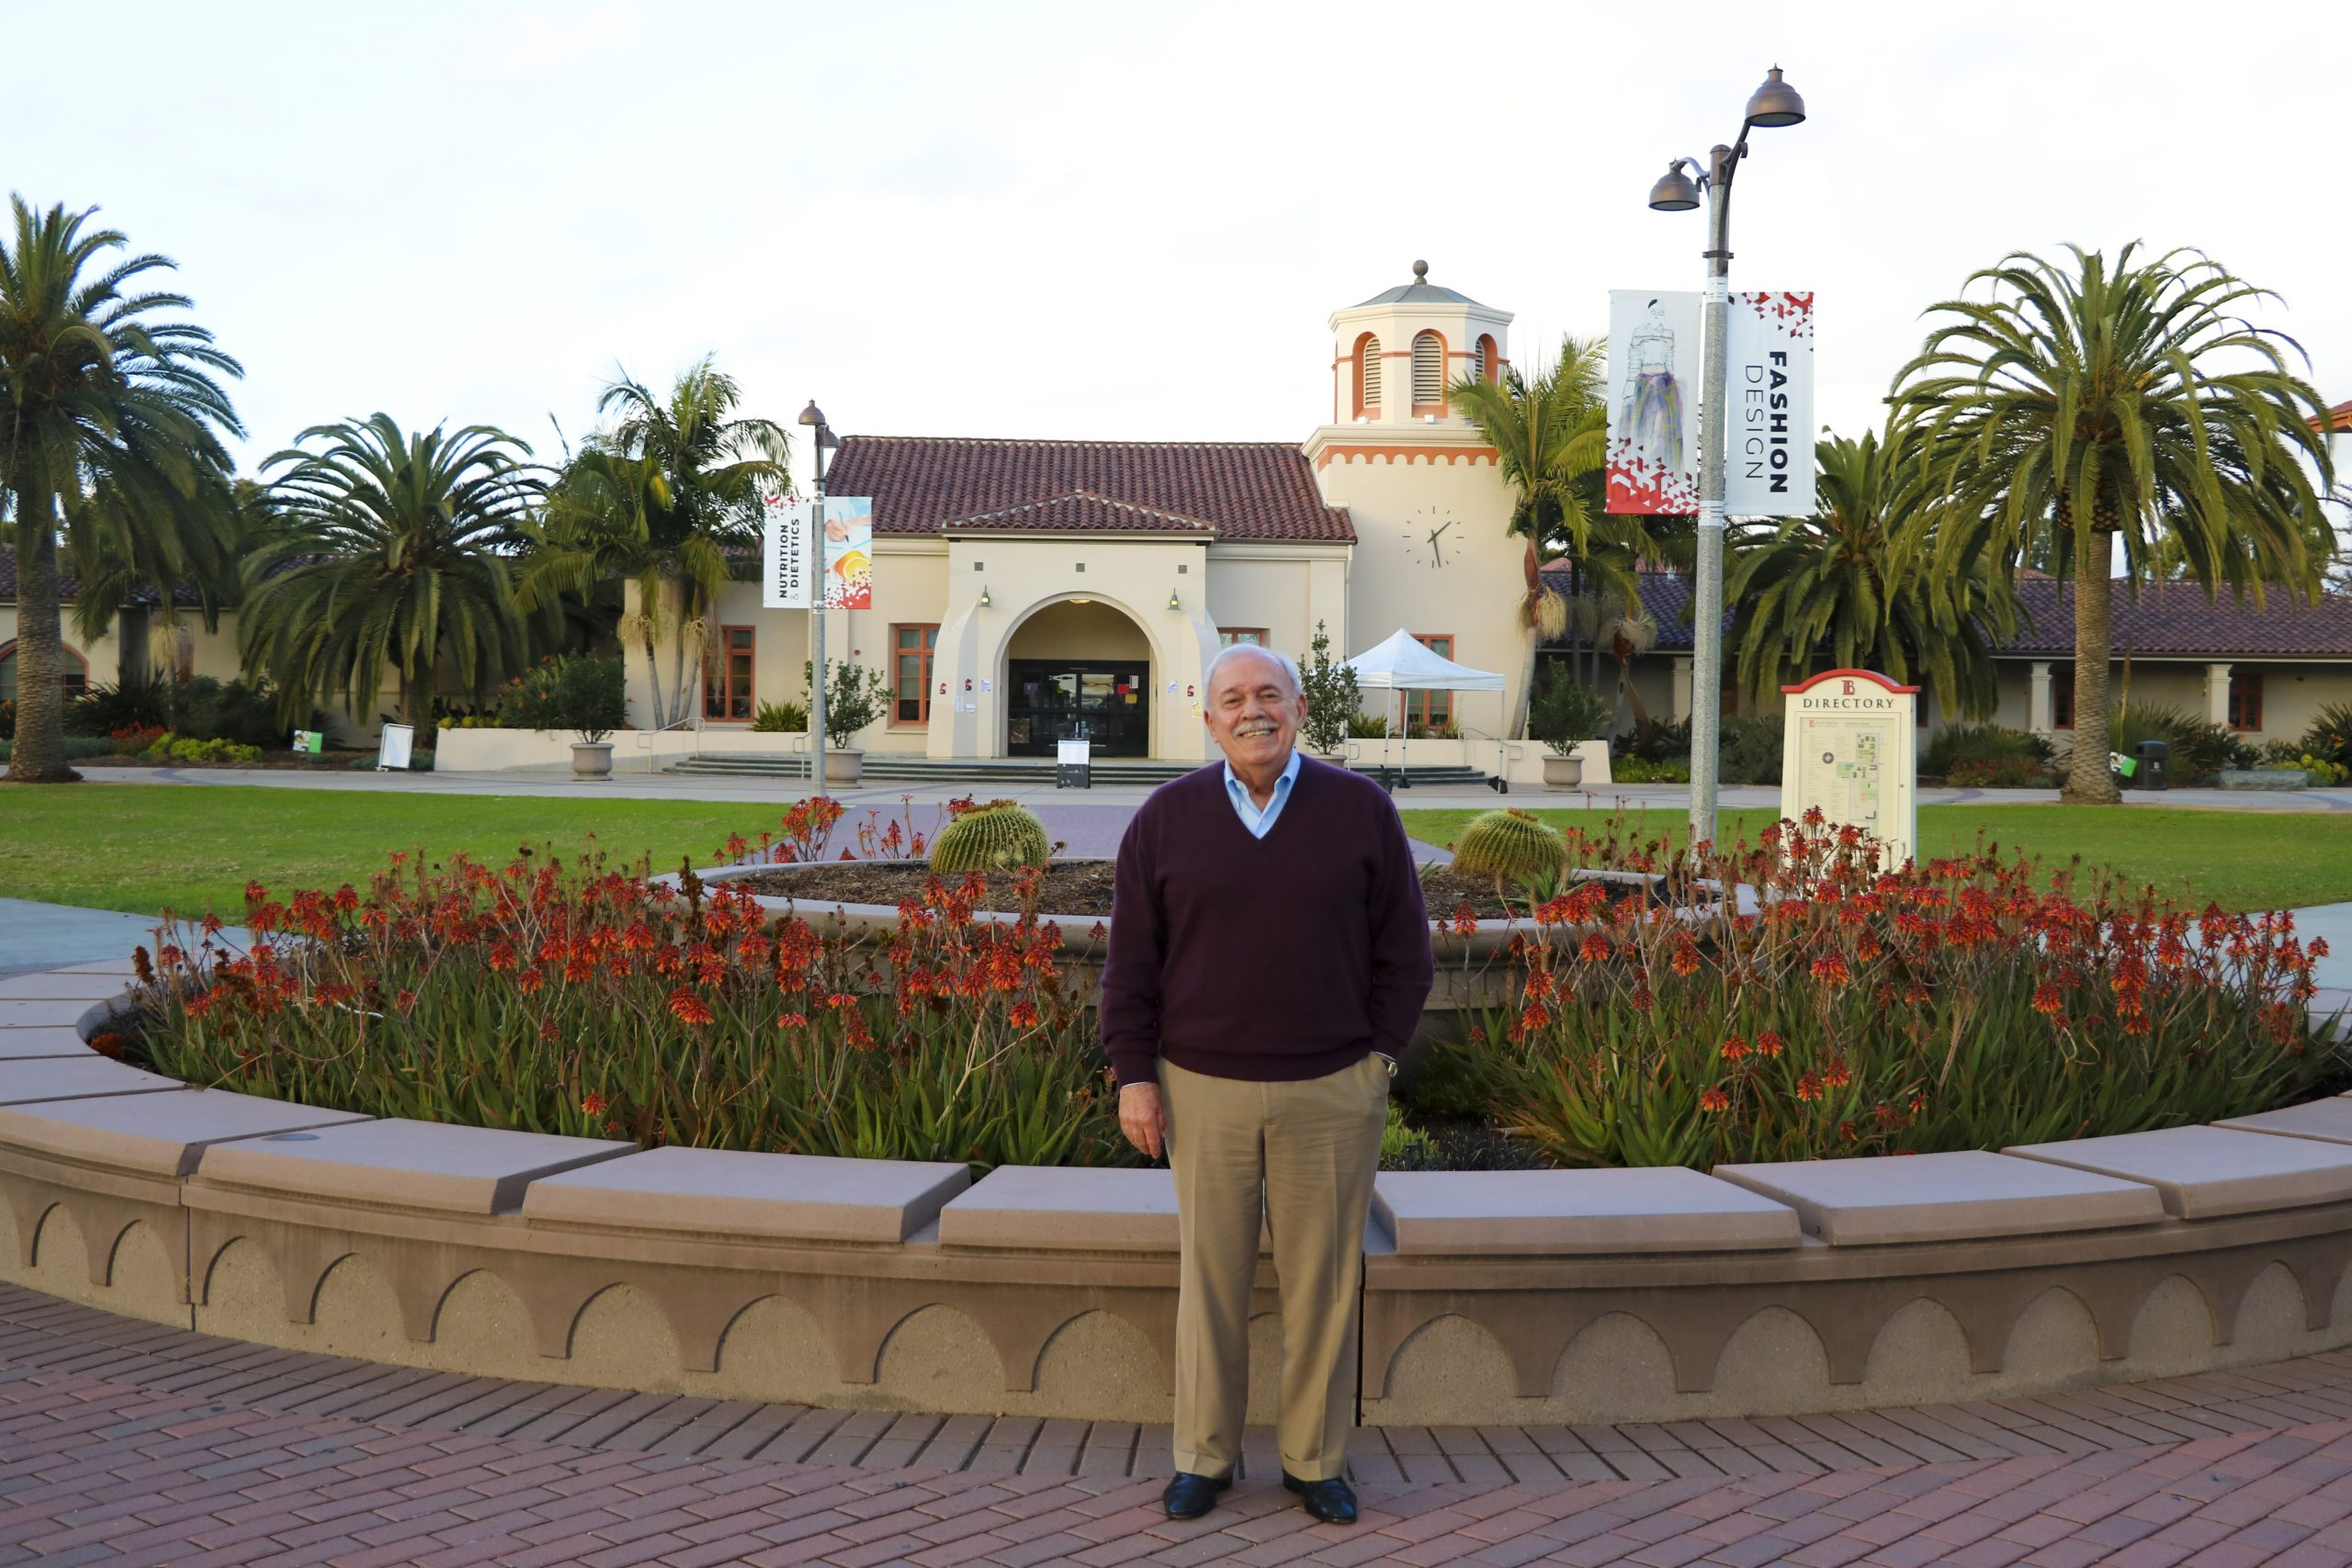 Lbcc Summer 2020.Up And Coming Trustee Lbcc Viking News